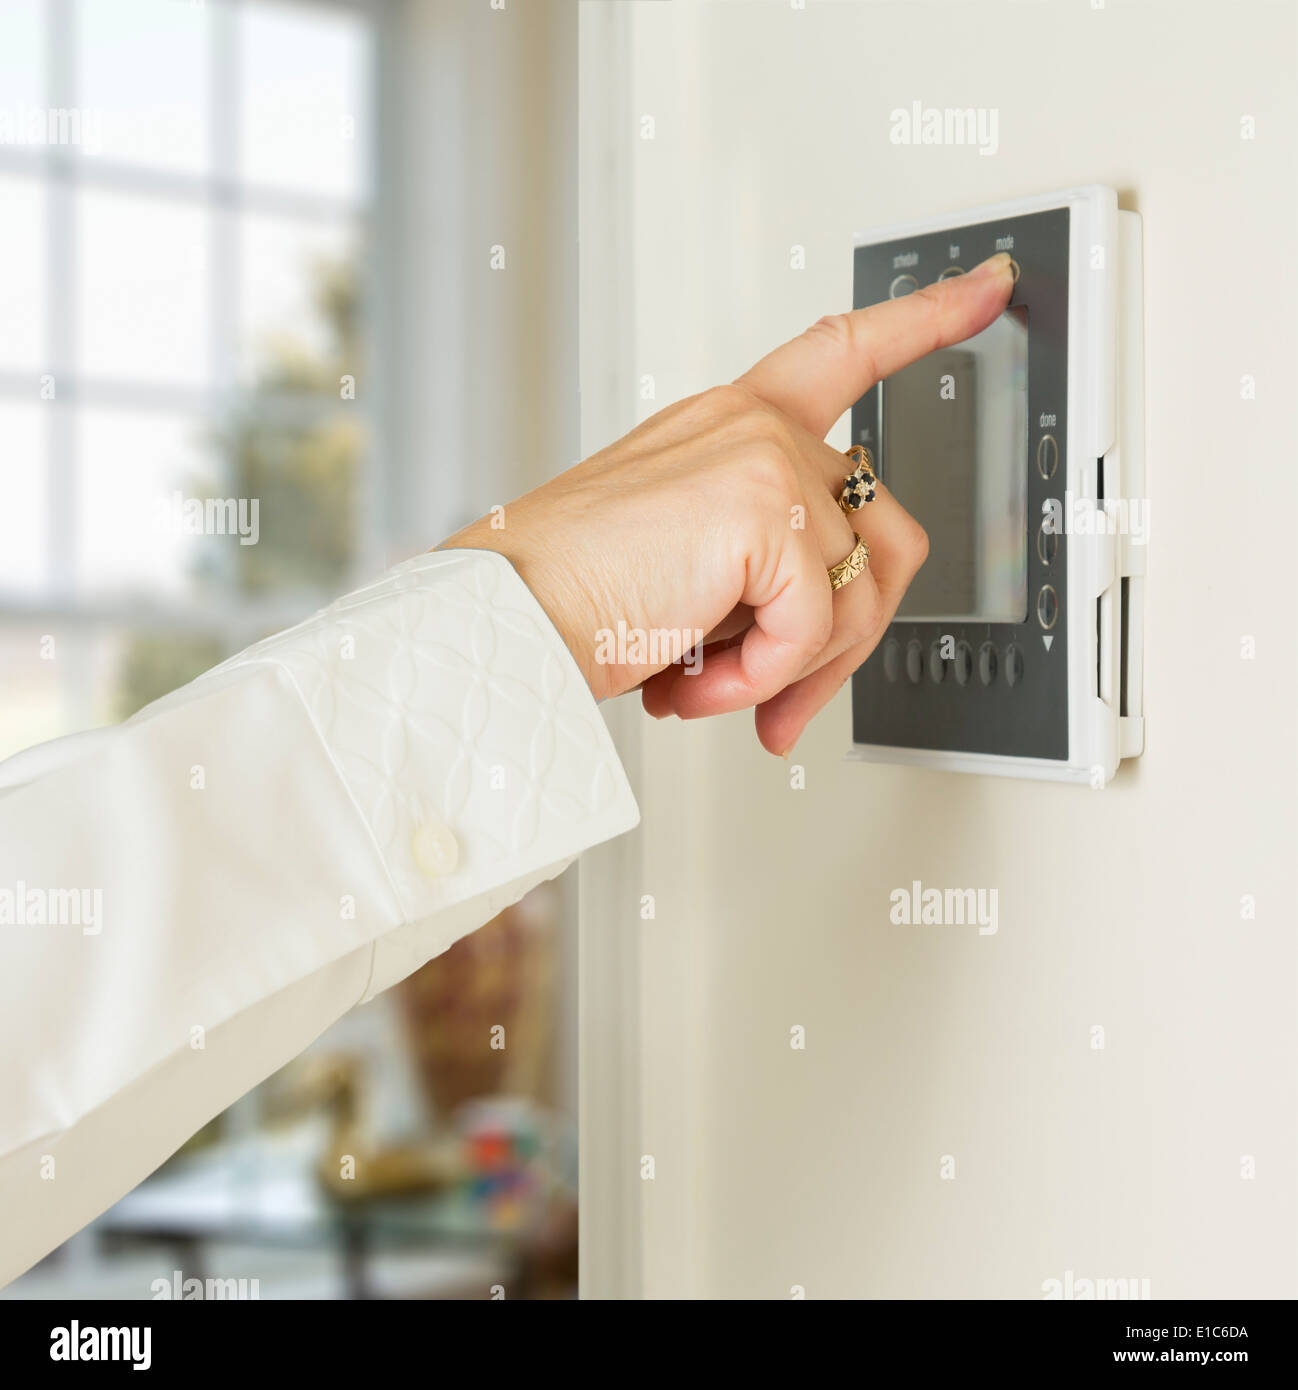 Using an electronic digital ventilation and heating thermostat timer on wall of a modern home - Stock Image